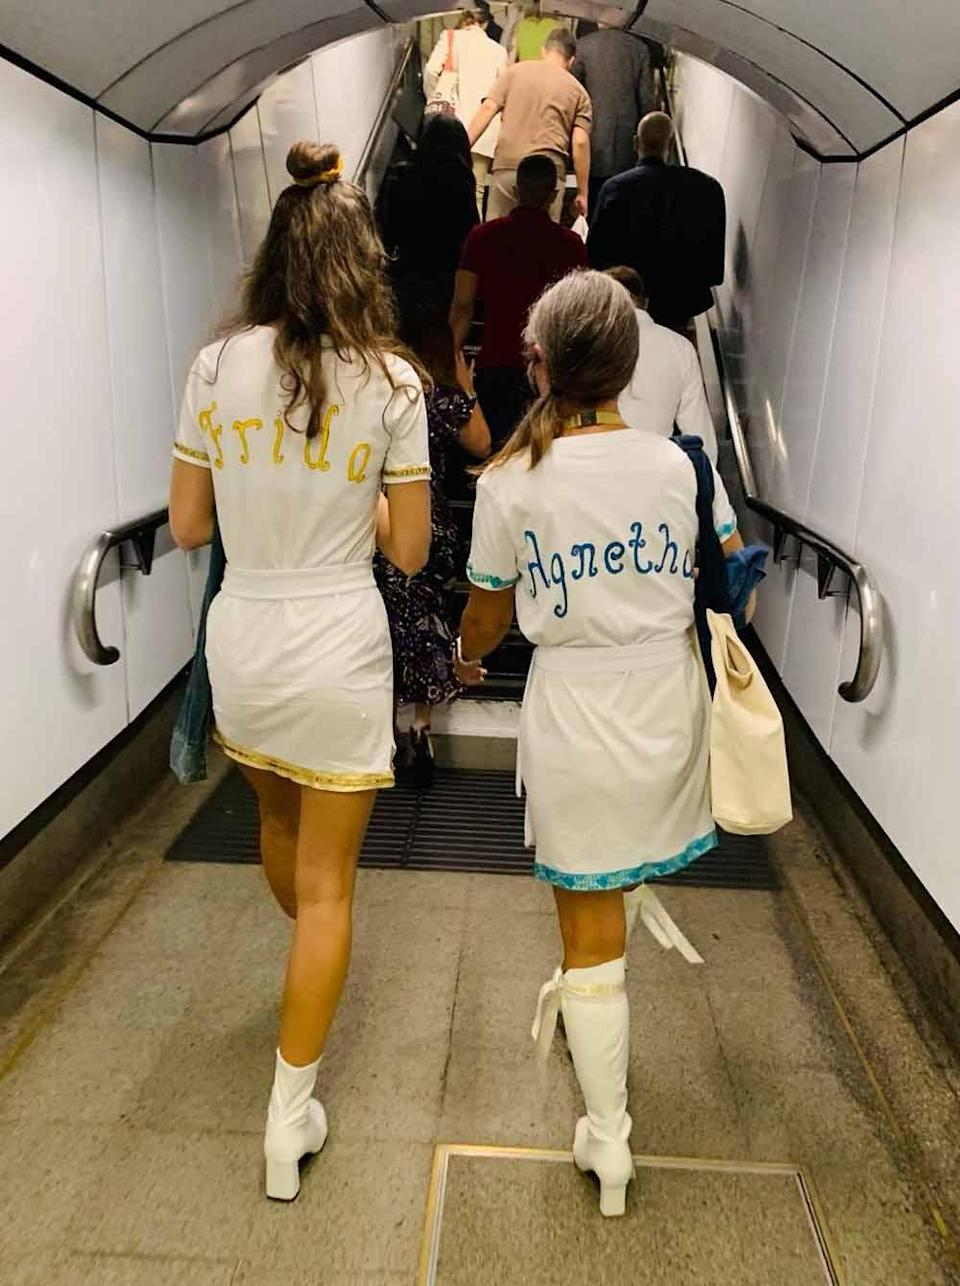 Jane and Chloe walking through the tube to celebrate Mamma Mia reopening in September 2021 (Collect/PA Real Life).